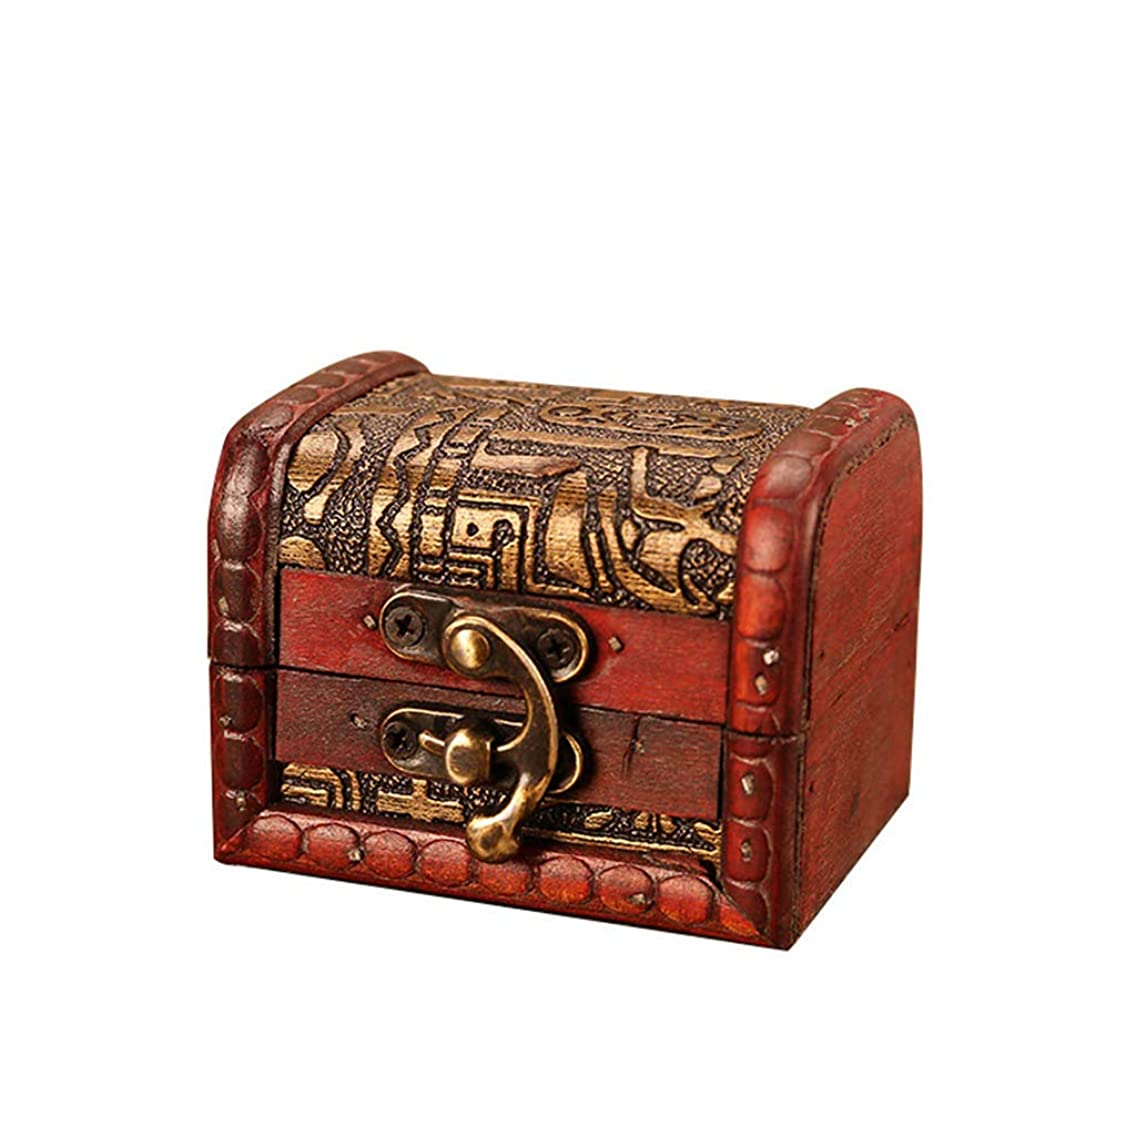 NewKelly Vintage European Jewelry Wooden Box With Mini Metal Lock For Storing Jewelry Treasure Pearl